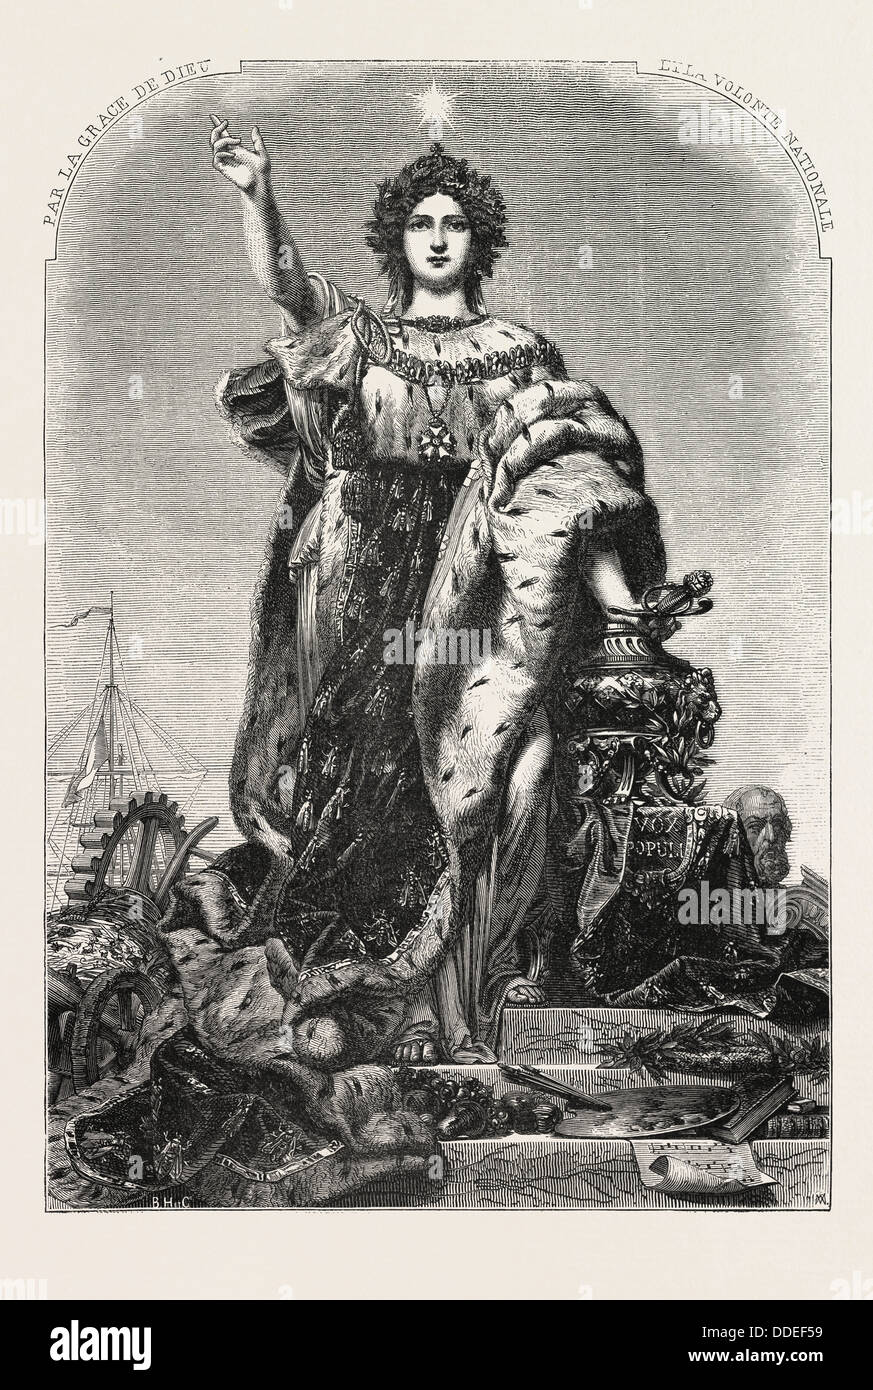 France, allegorical figure painting by M.A. Marc. 1855. Engraving - Stock Image